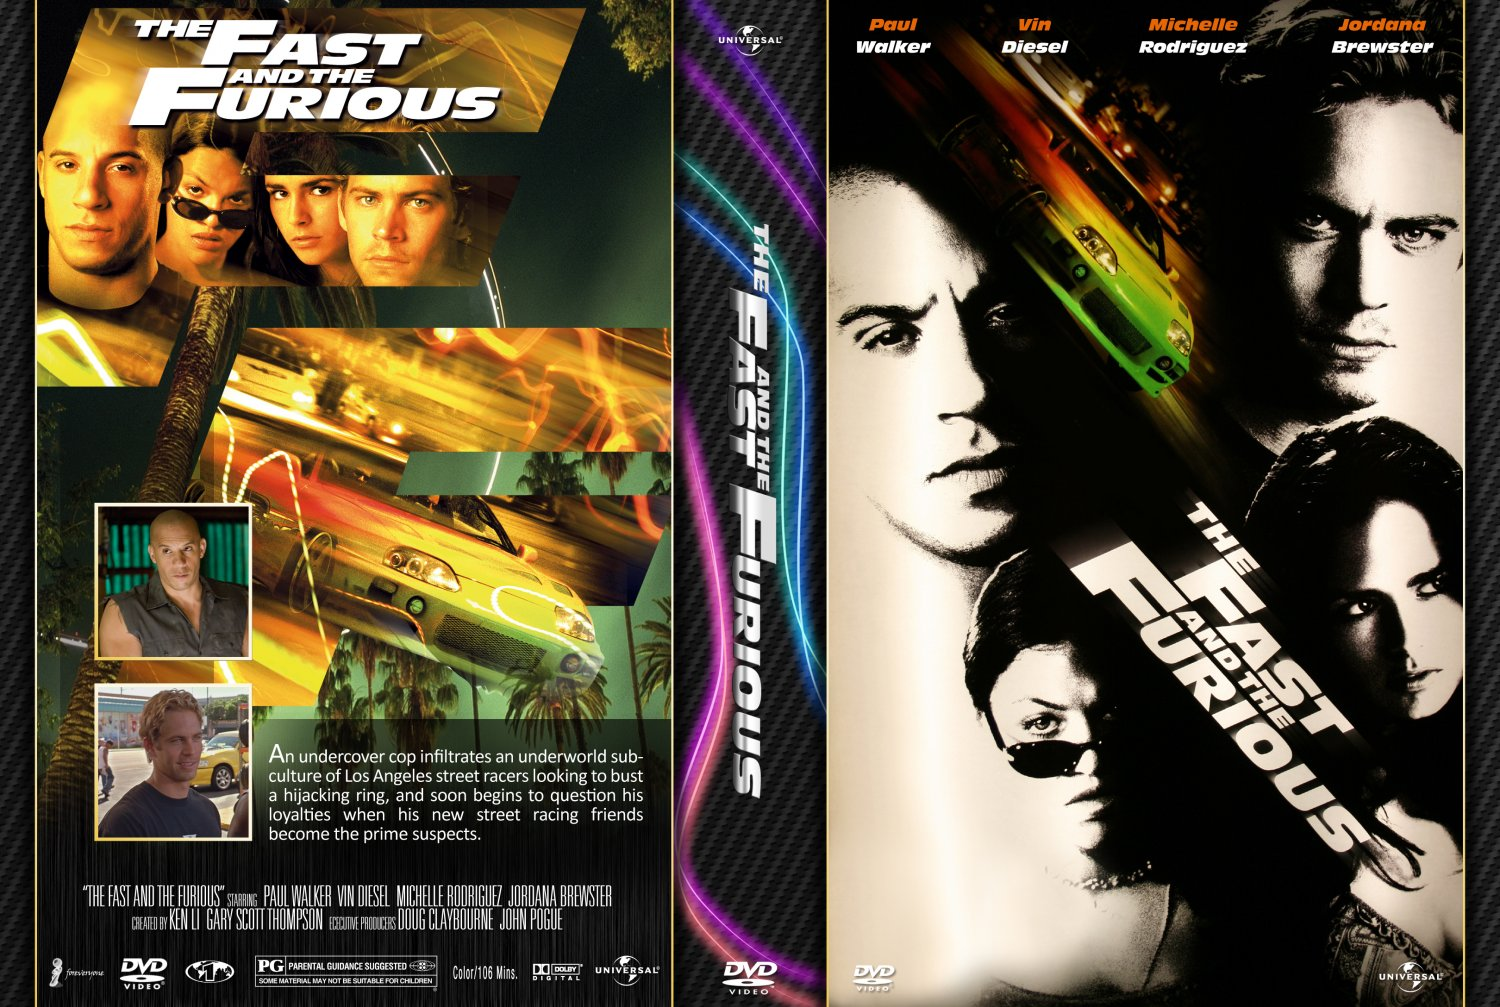 the fast and the furious movie dvd custom covers the fast and the furious1 dvd covers. Black Bedroom Furniture Sets. Home Design Ideas